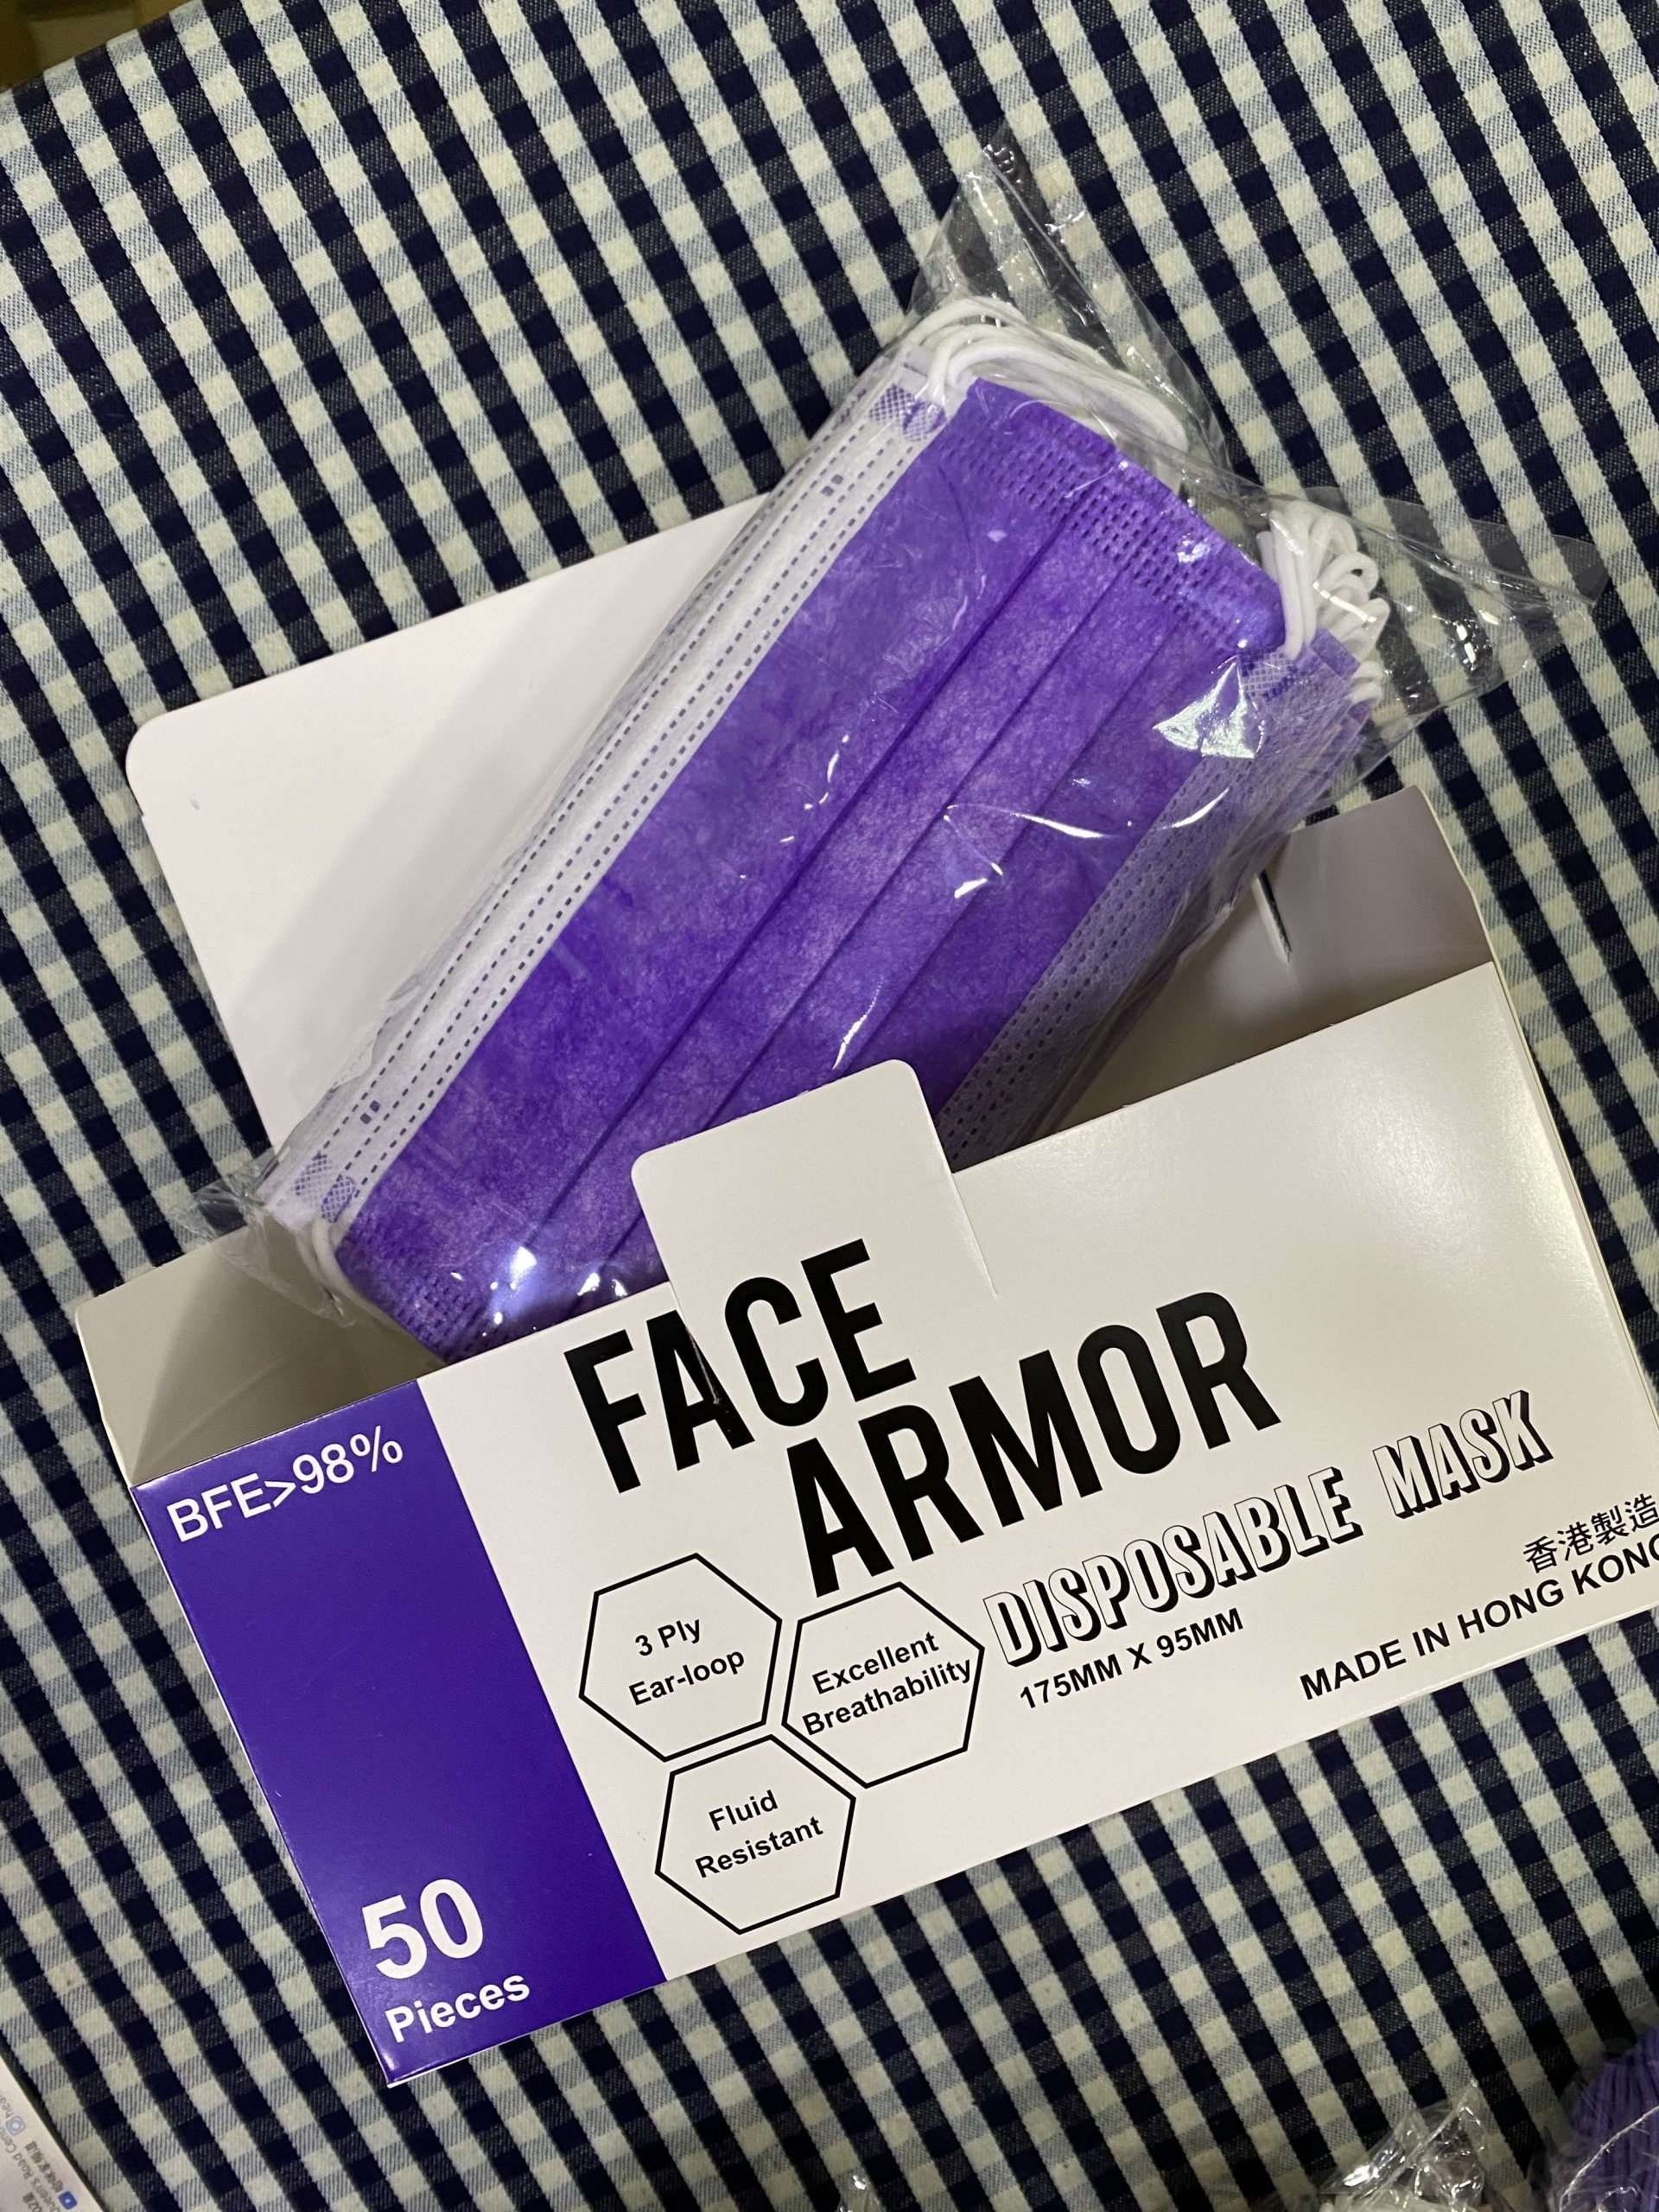 Face Armor Disposable Masks | ASTM LEVEL 3 | Made in Hong Kong| 50 PIECES | DARK PURPLE